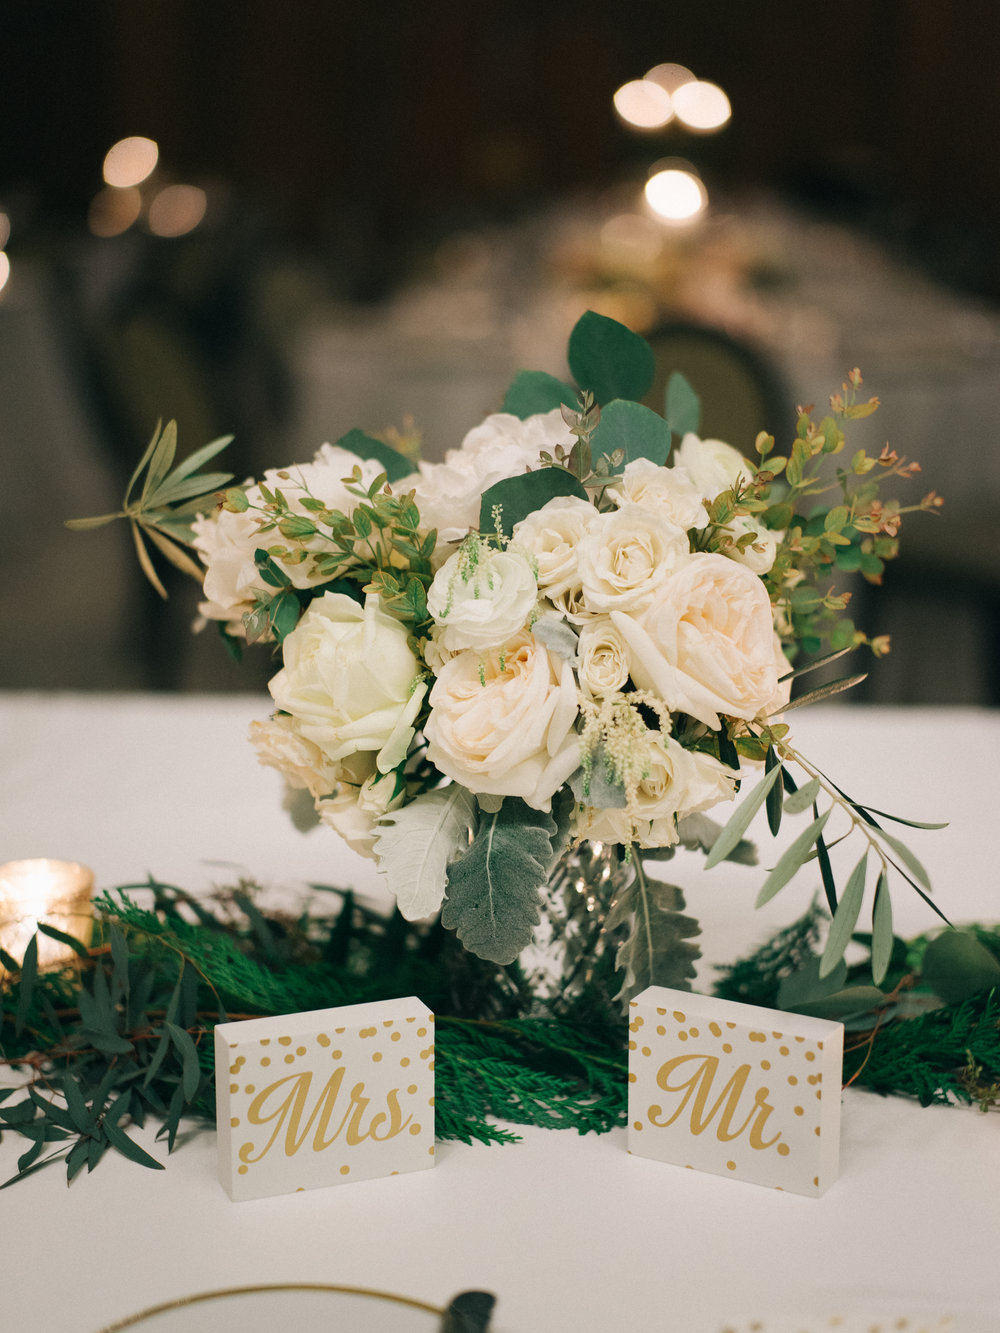 Flowers by Fleur Inc, Planning by Jayne Weddings, Photo by Sean Cook Weddings.